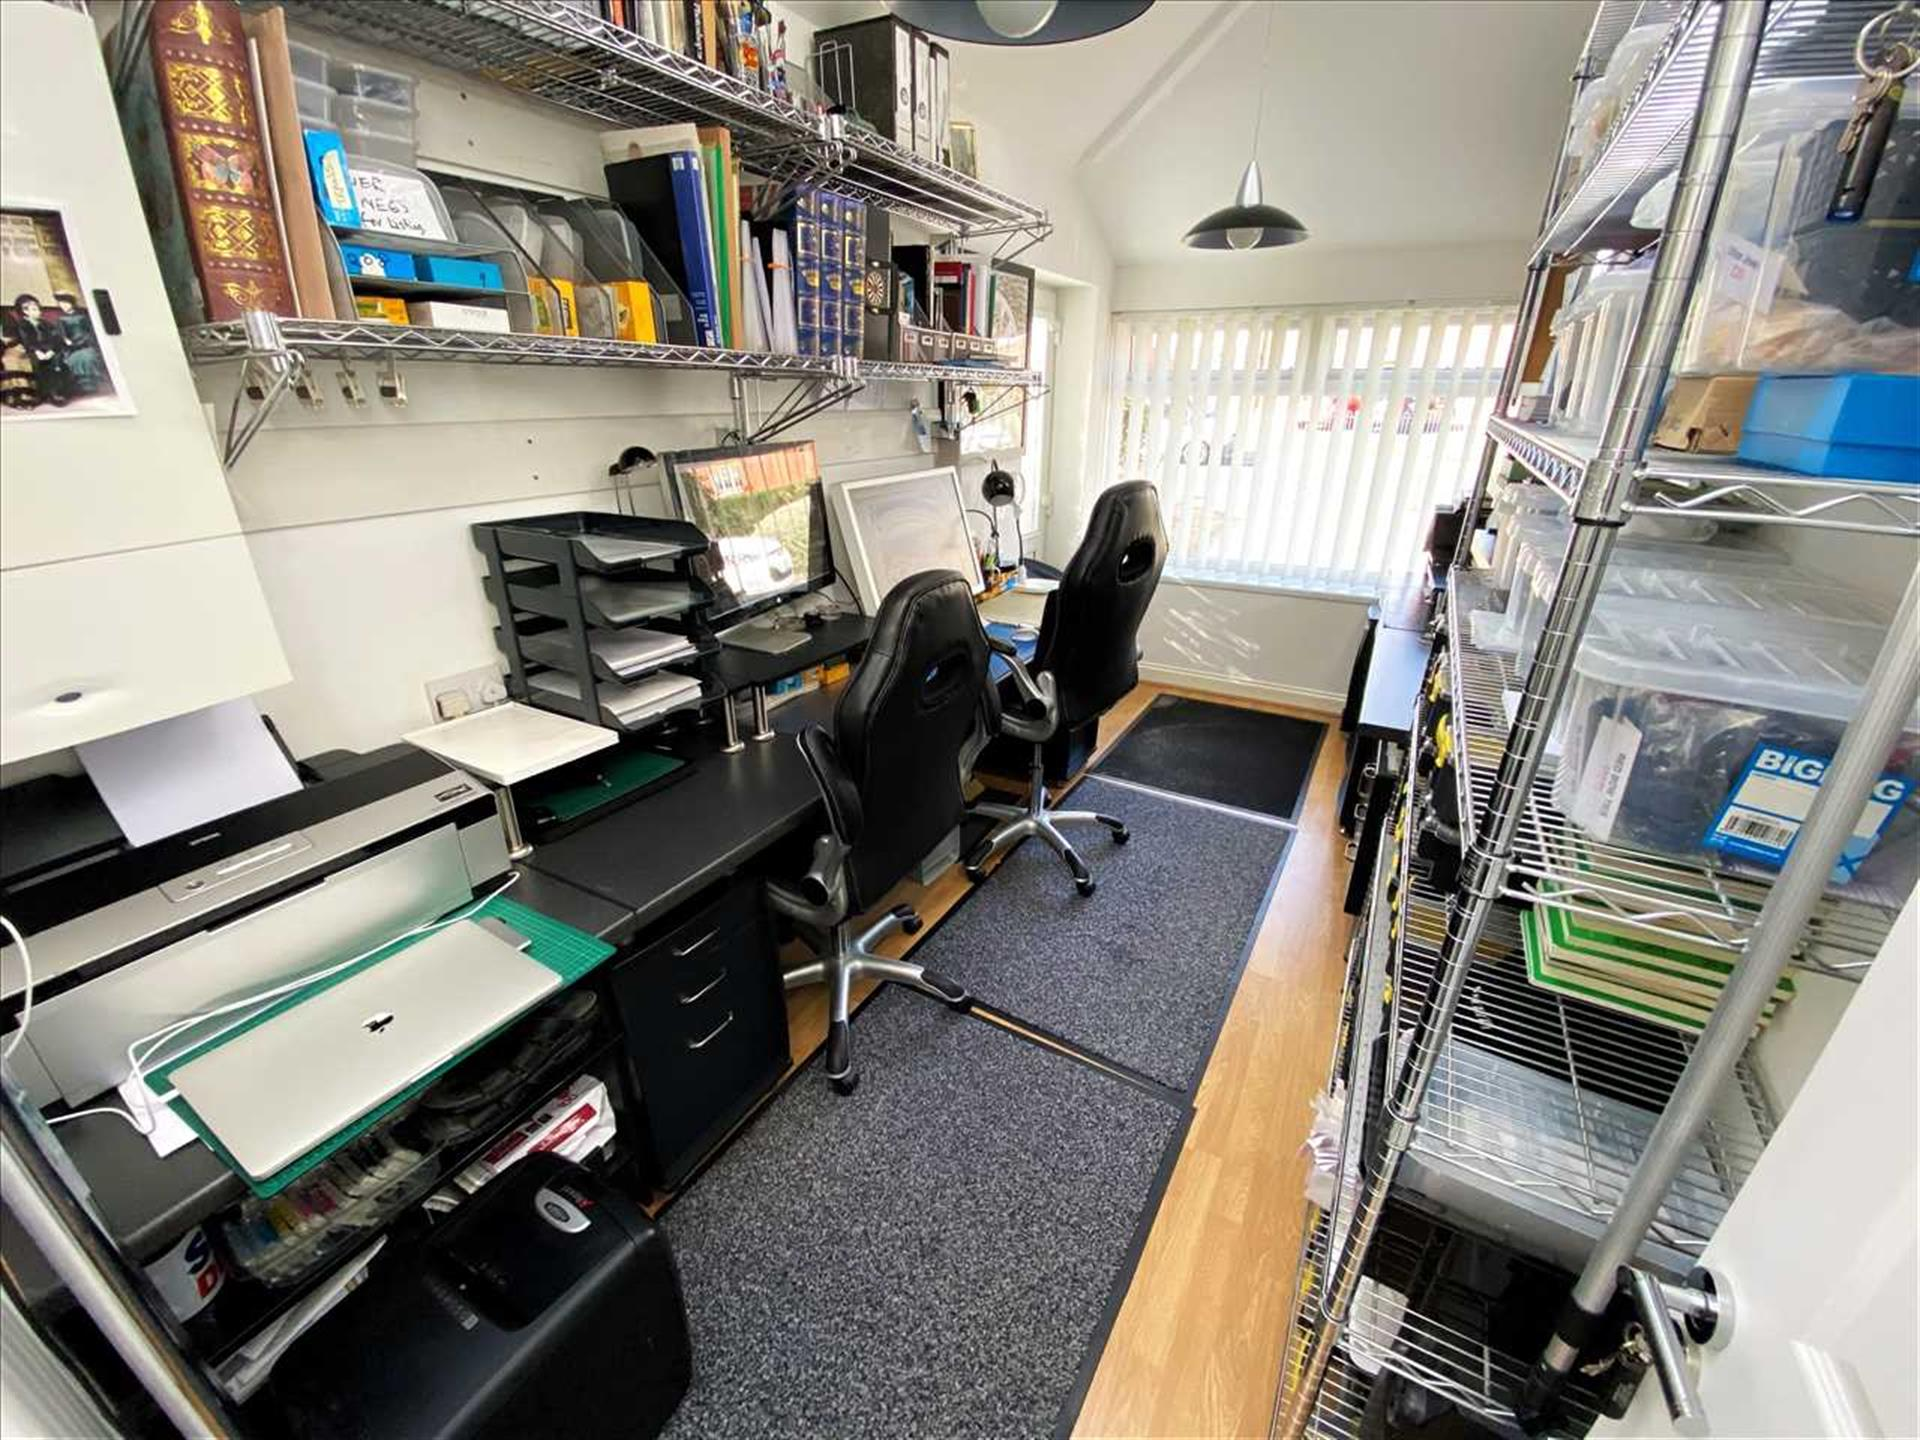 3 Bedroom Semi-detached House For Sale - Office